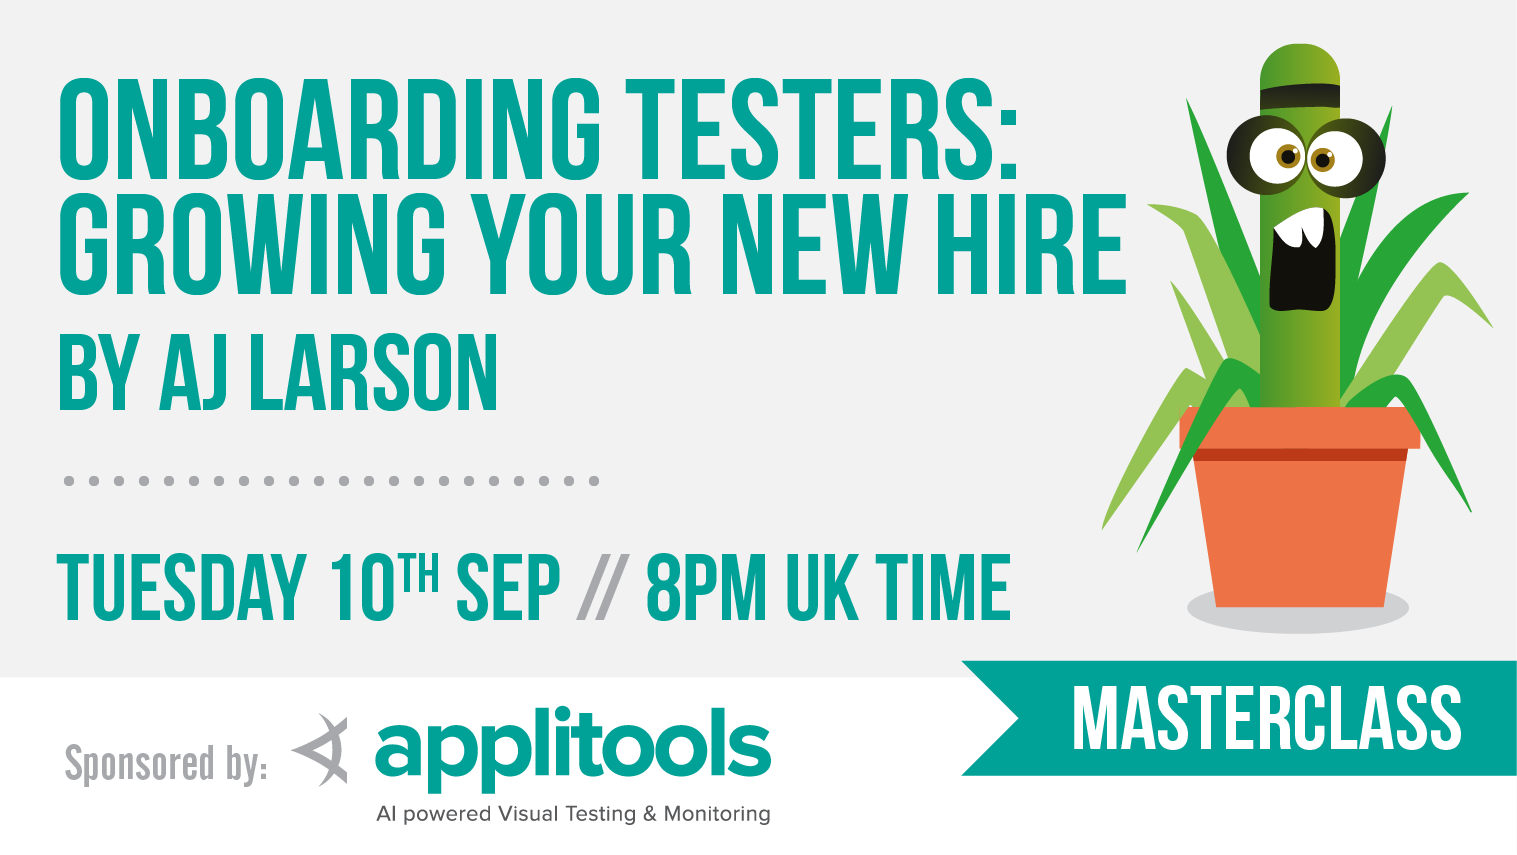 Masterclass: Onboarding testers: Growing your new hire with AJ Larson, starts: 2019-09-10